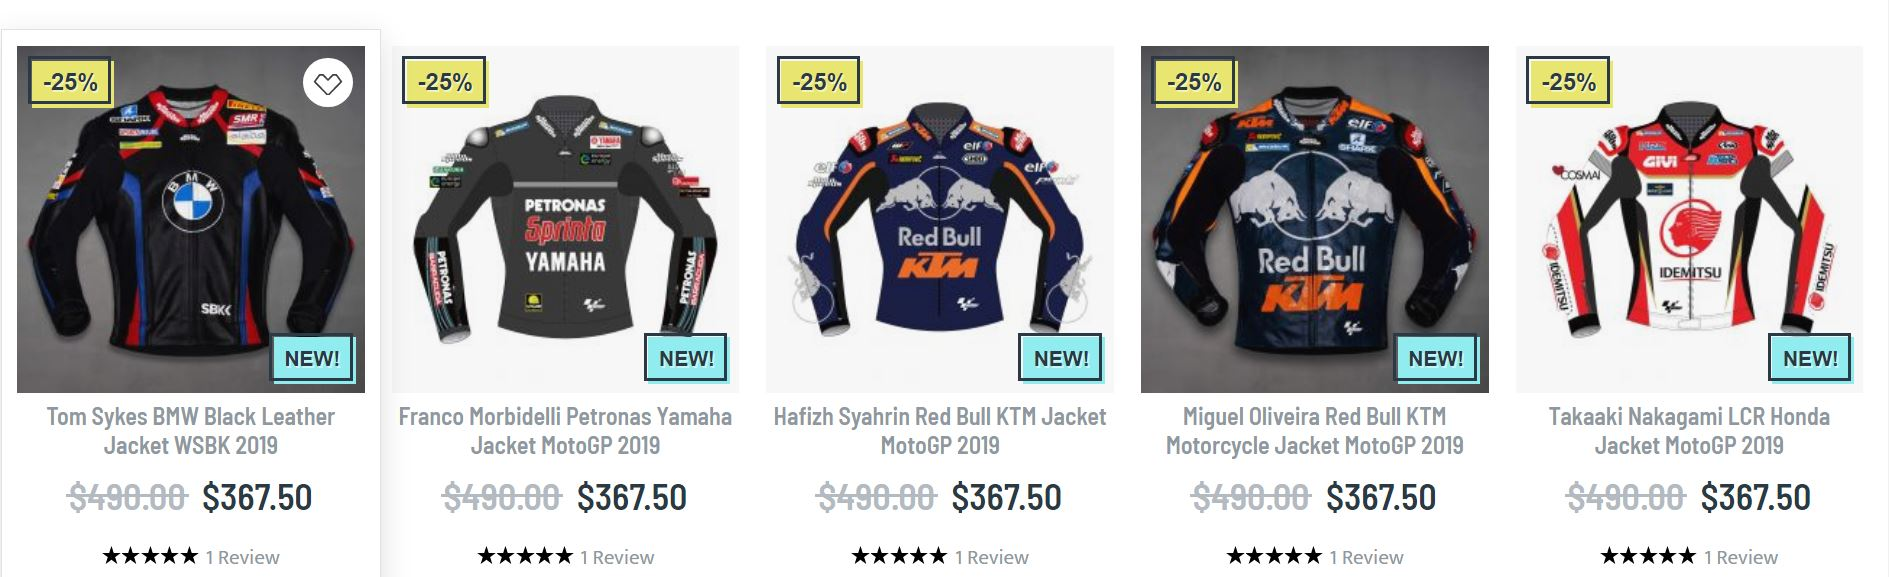 Motogp racing jackets